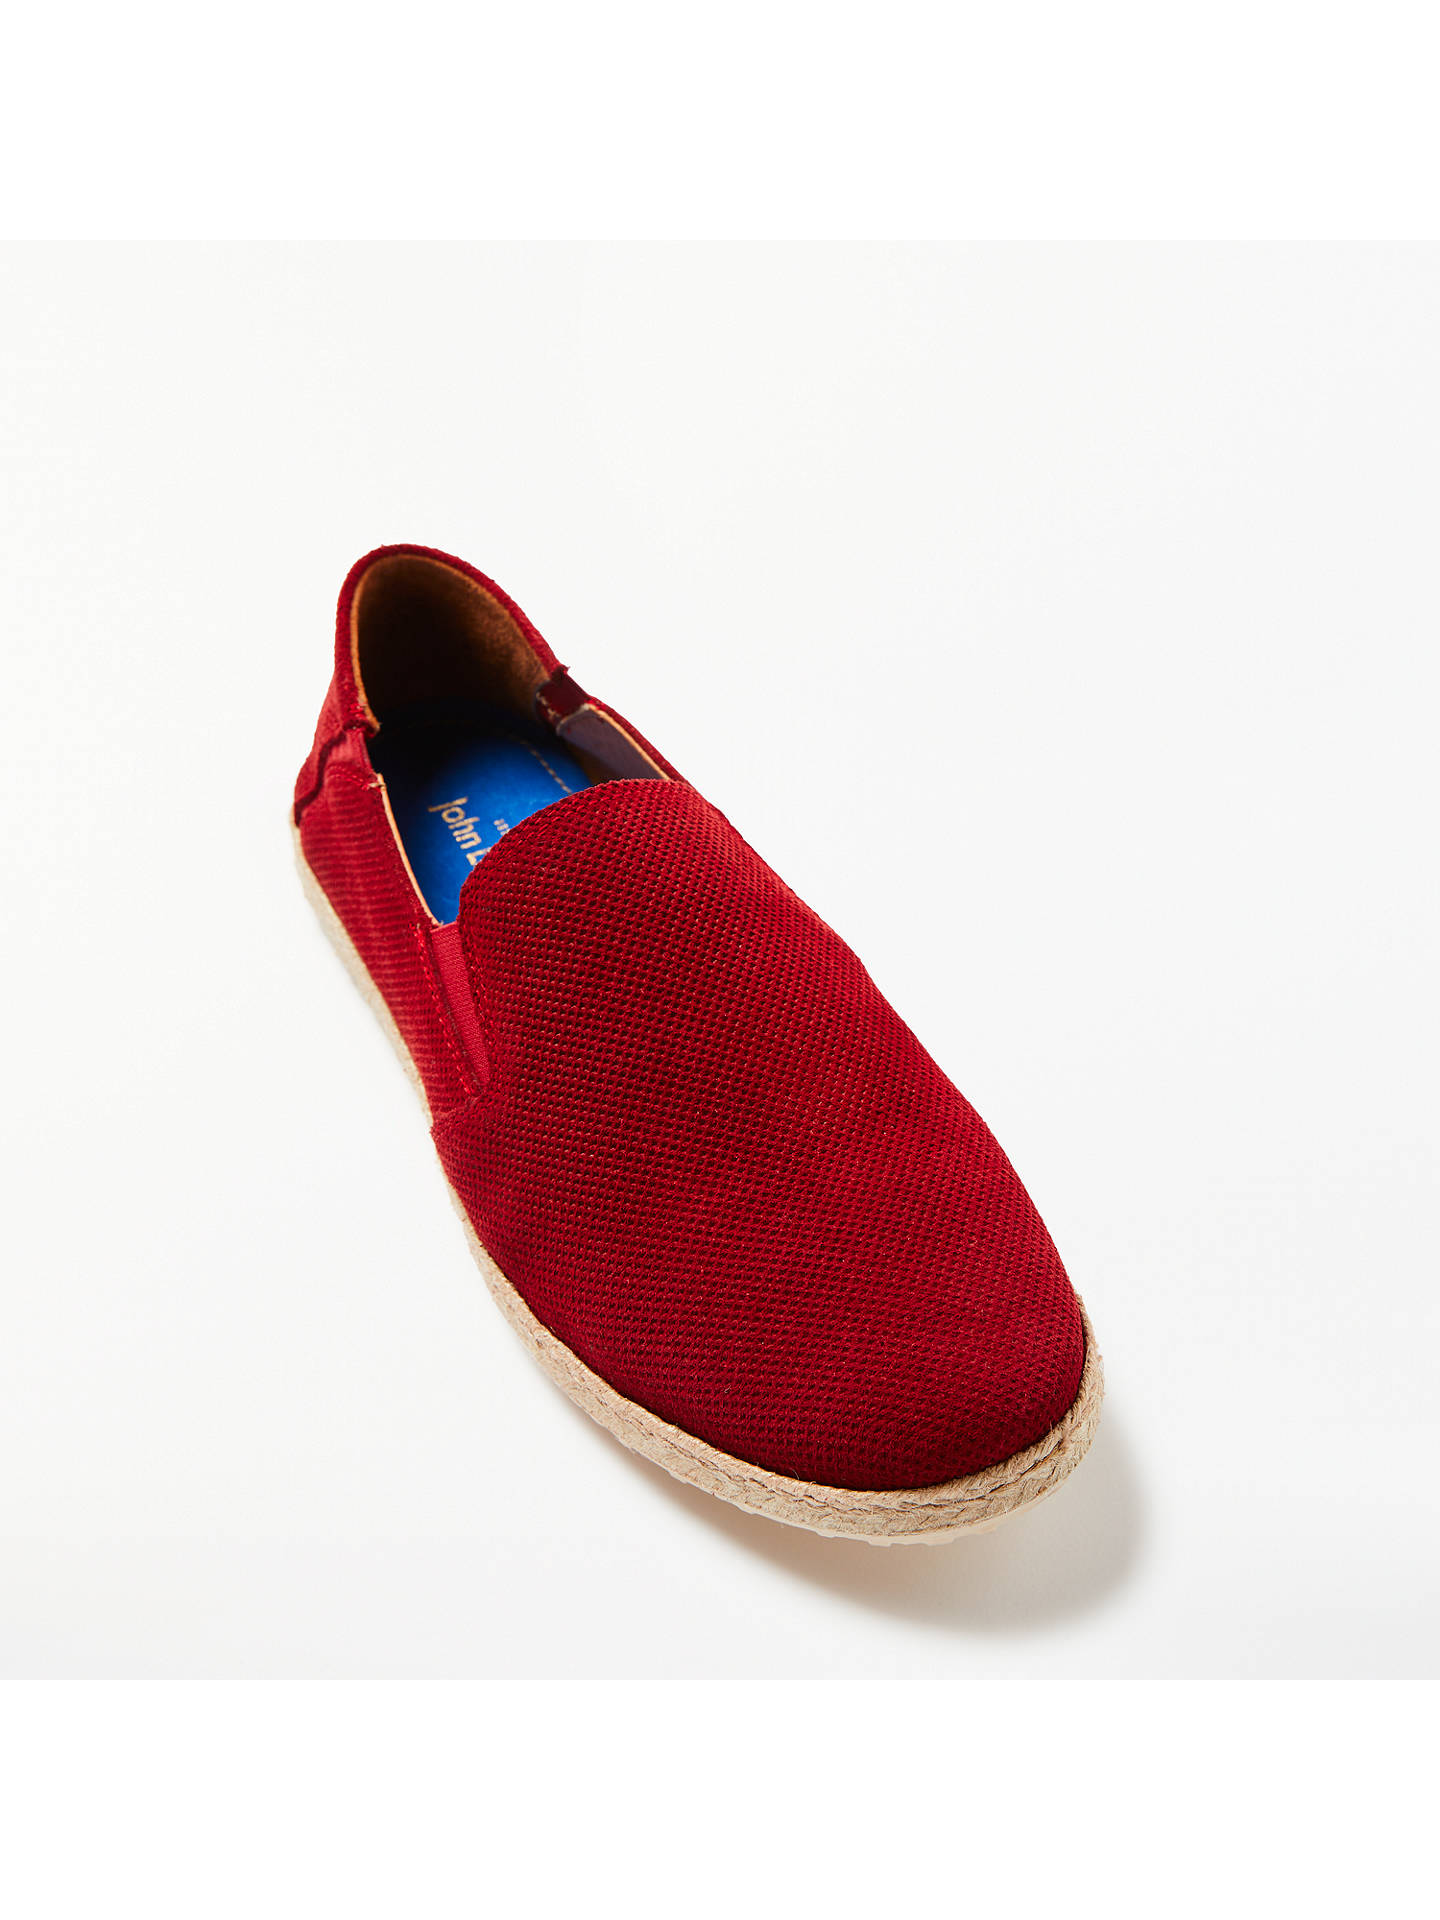 Buy John Lewis Suede Espadrilles, Red, 7 Online at johnlewis.com